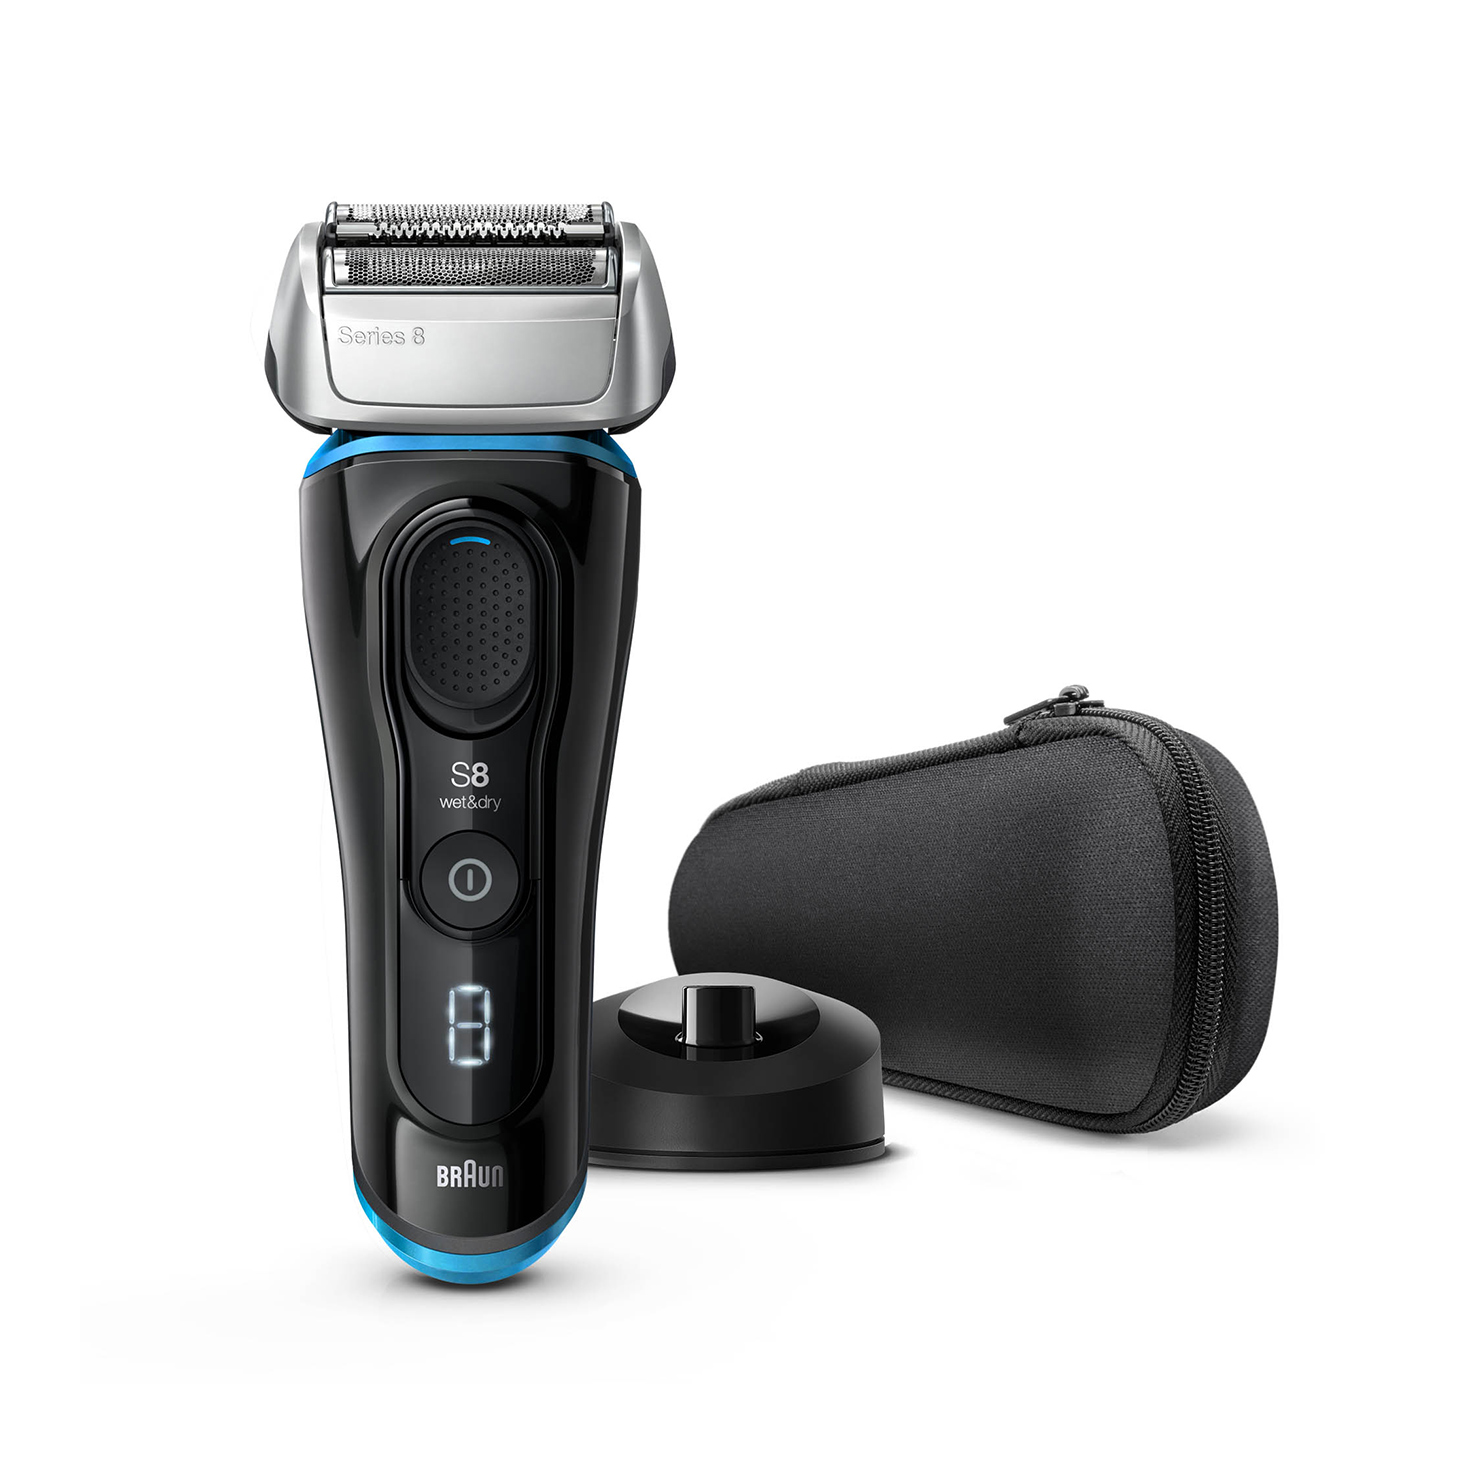 Series 8 8345s shaver